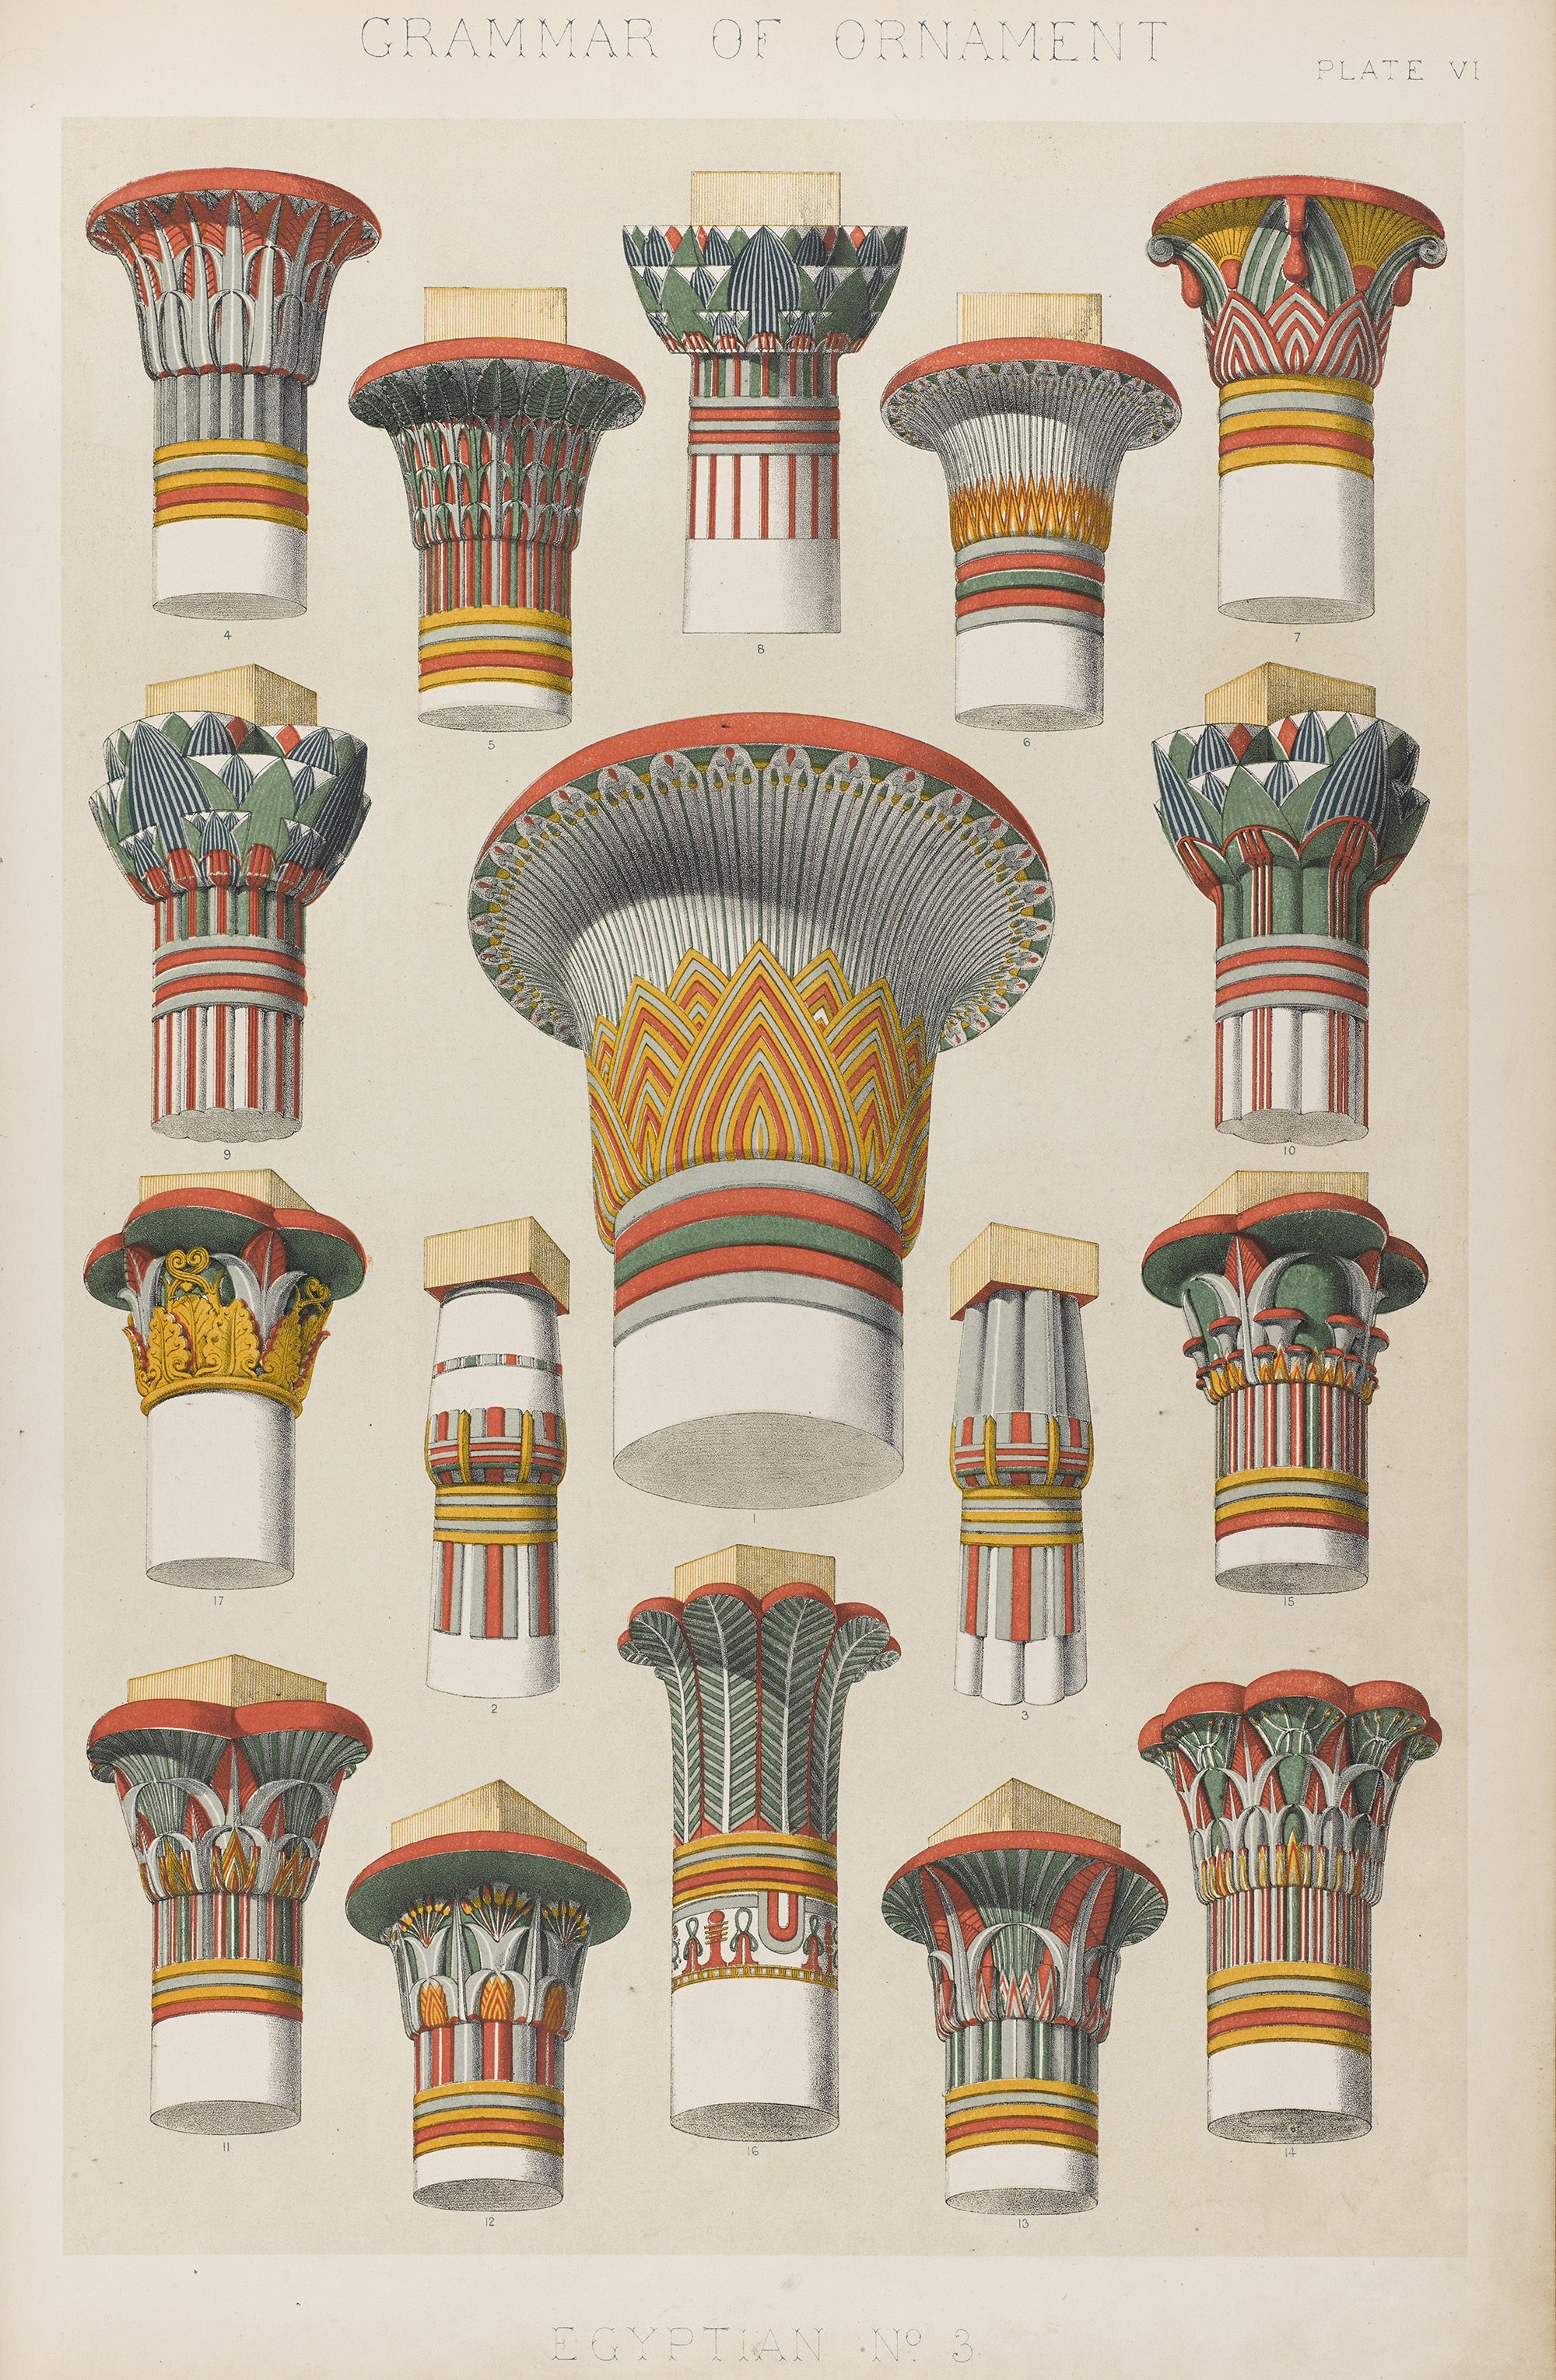 Terminologies In Egyptian Architecture Grammar Of Ornament By Owen Jones 1856 National Museum Of Scotland